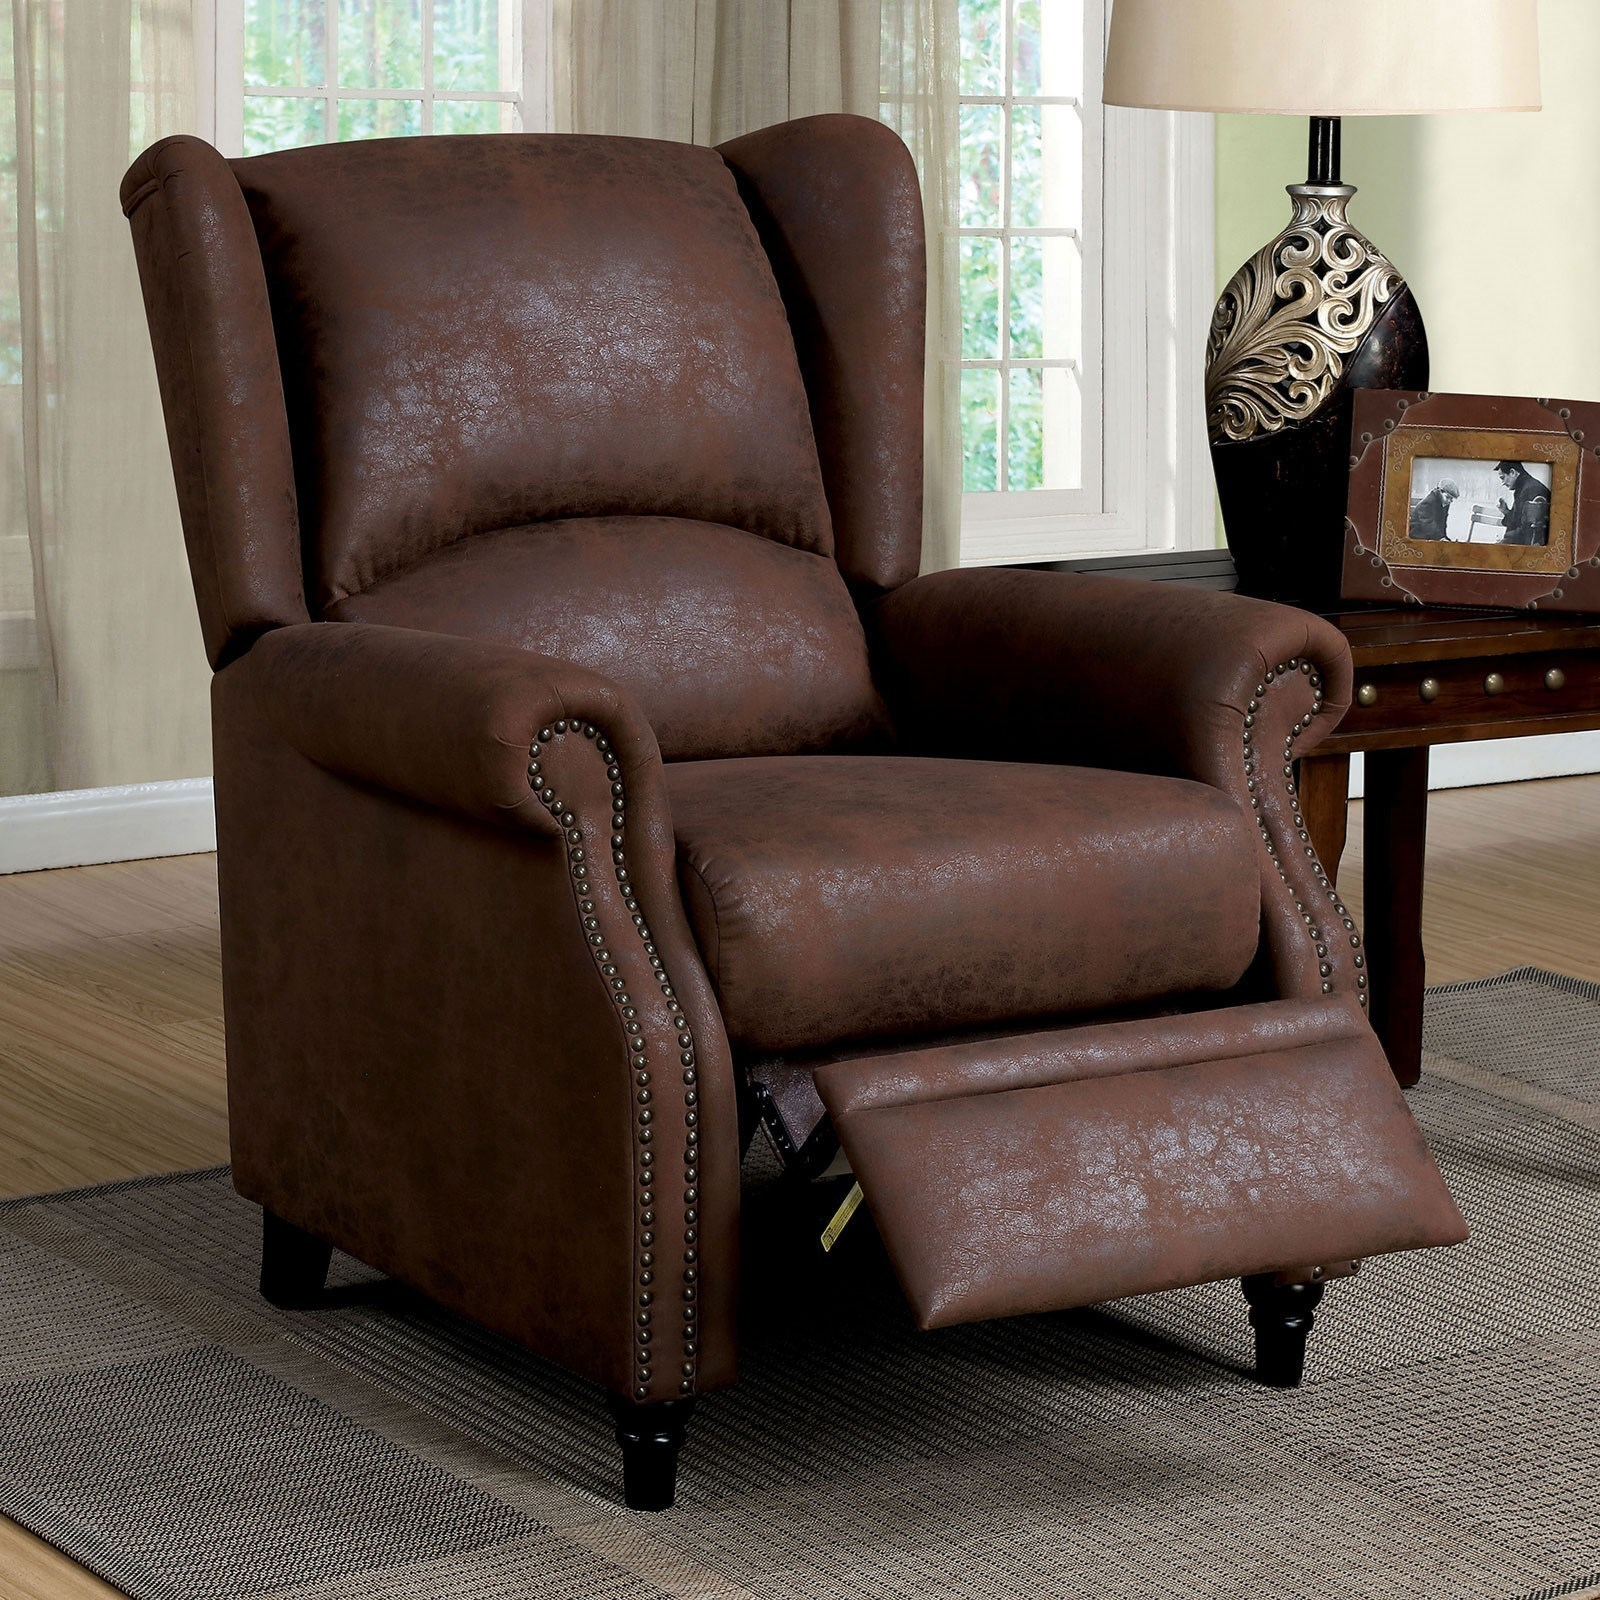 Wingback Recliner Chair Leona Transitional Push Back Reclining Chair With Wing Back And Nailheads By Furniture Of America At Rooms For Less